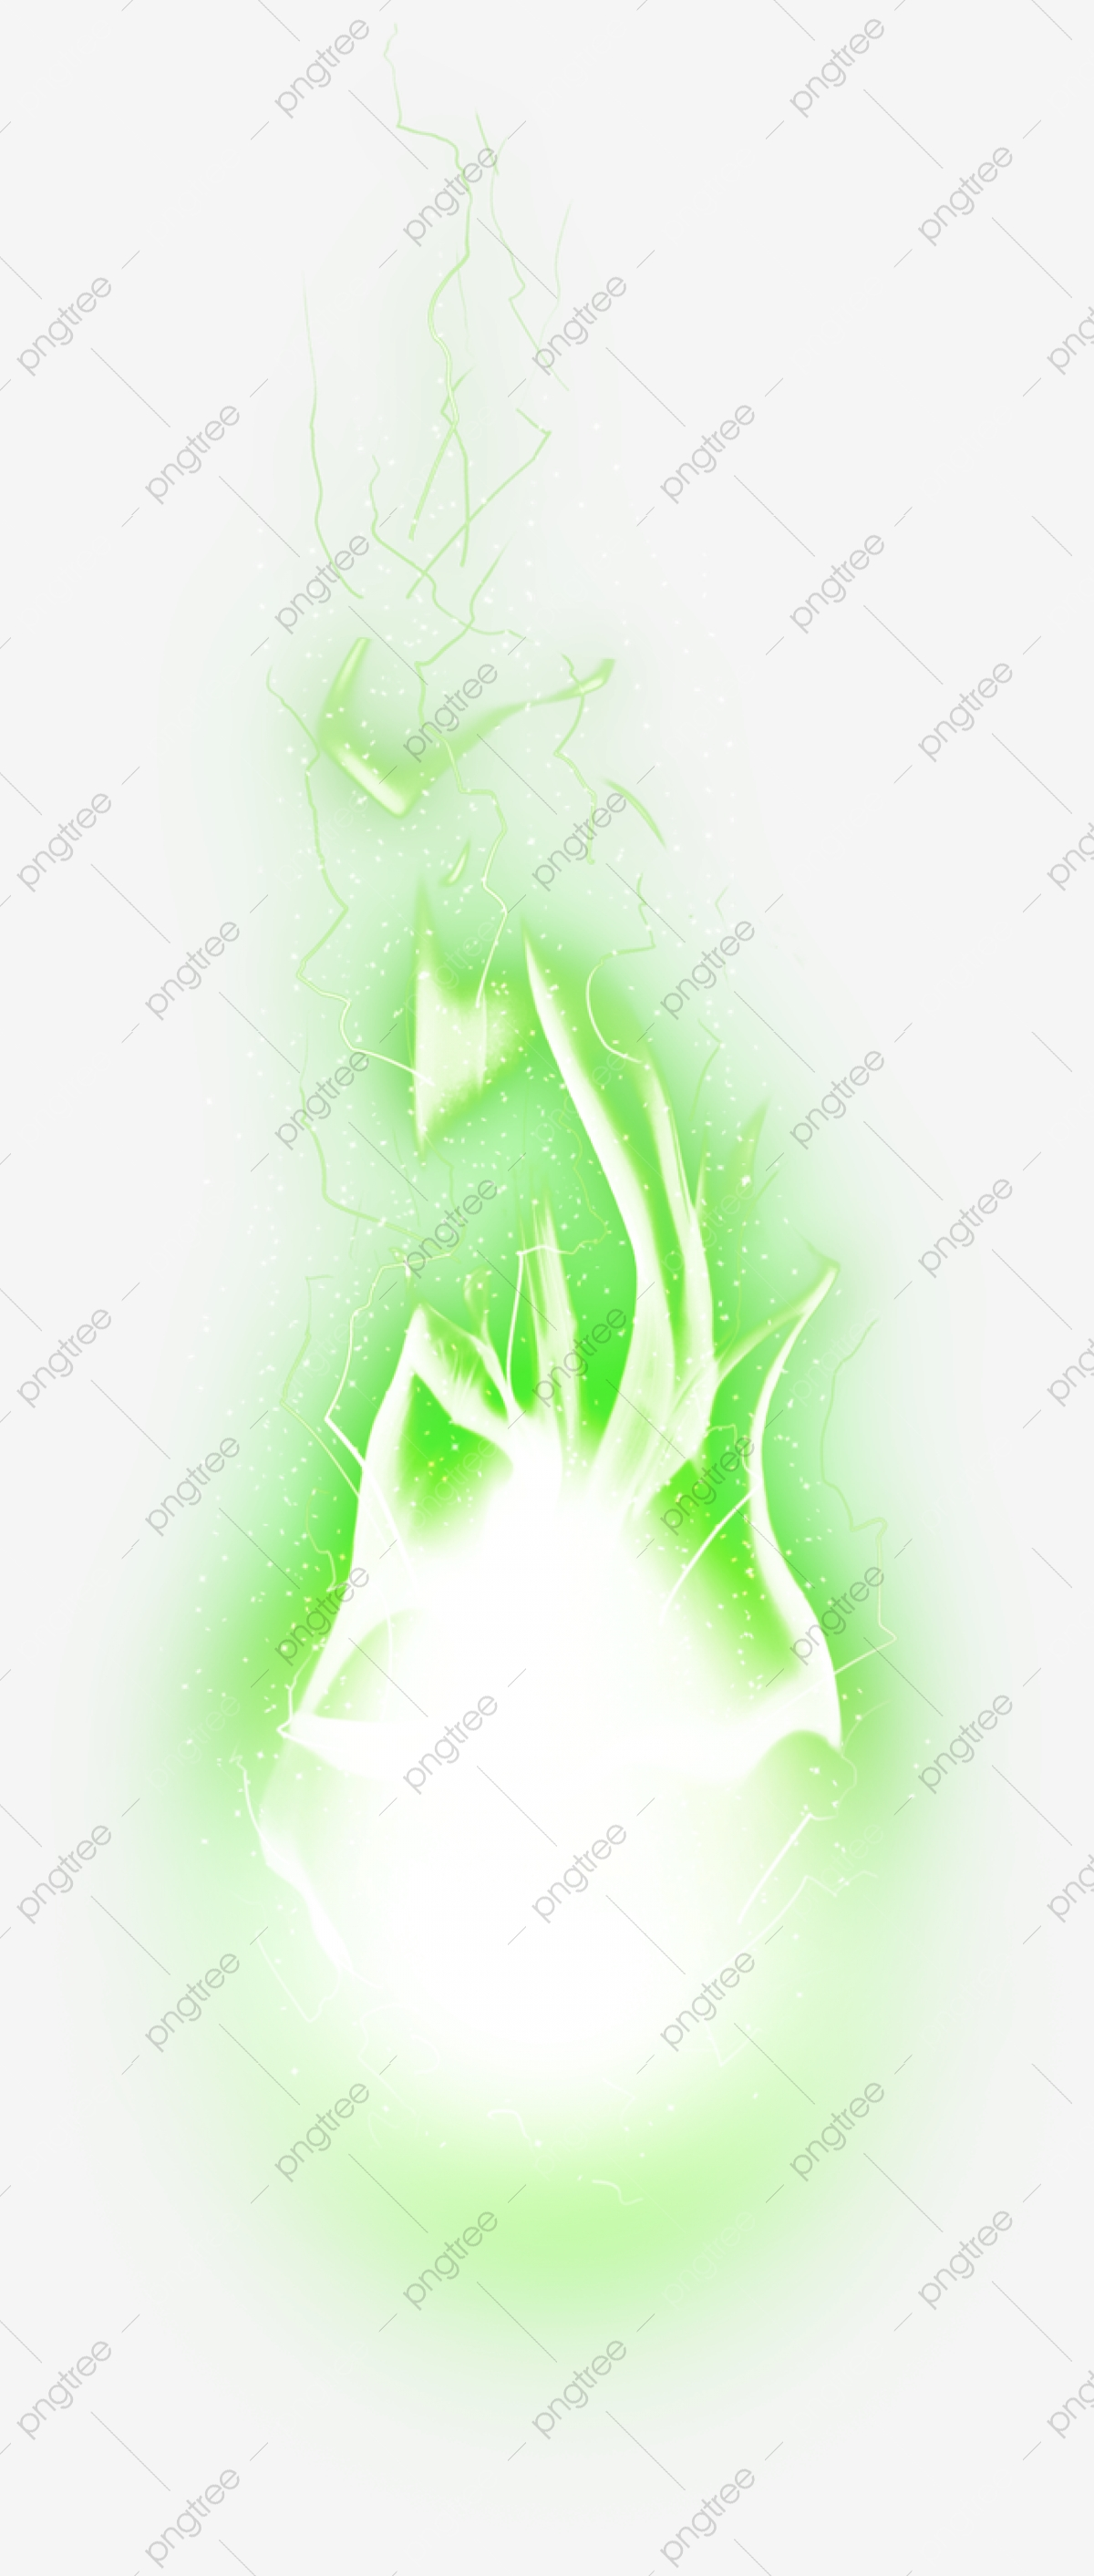 Glare, Light, Green, Lightning PNG Transparent Image and Clipart for.